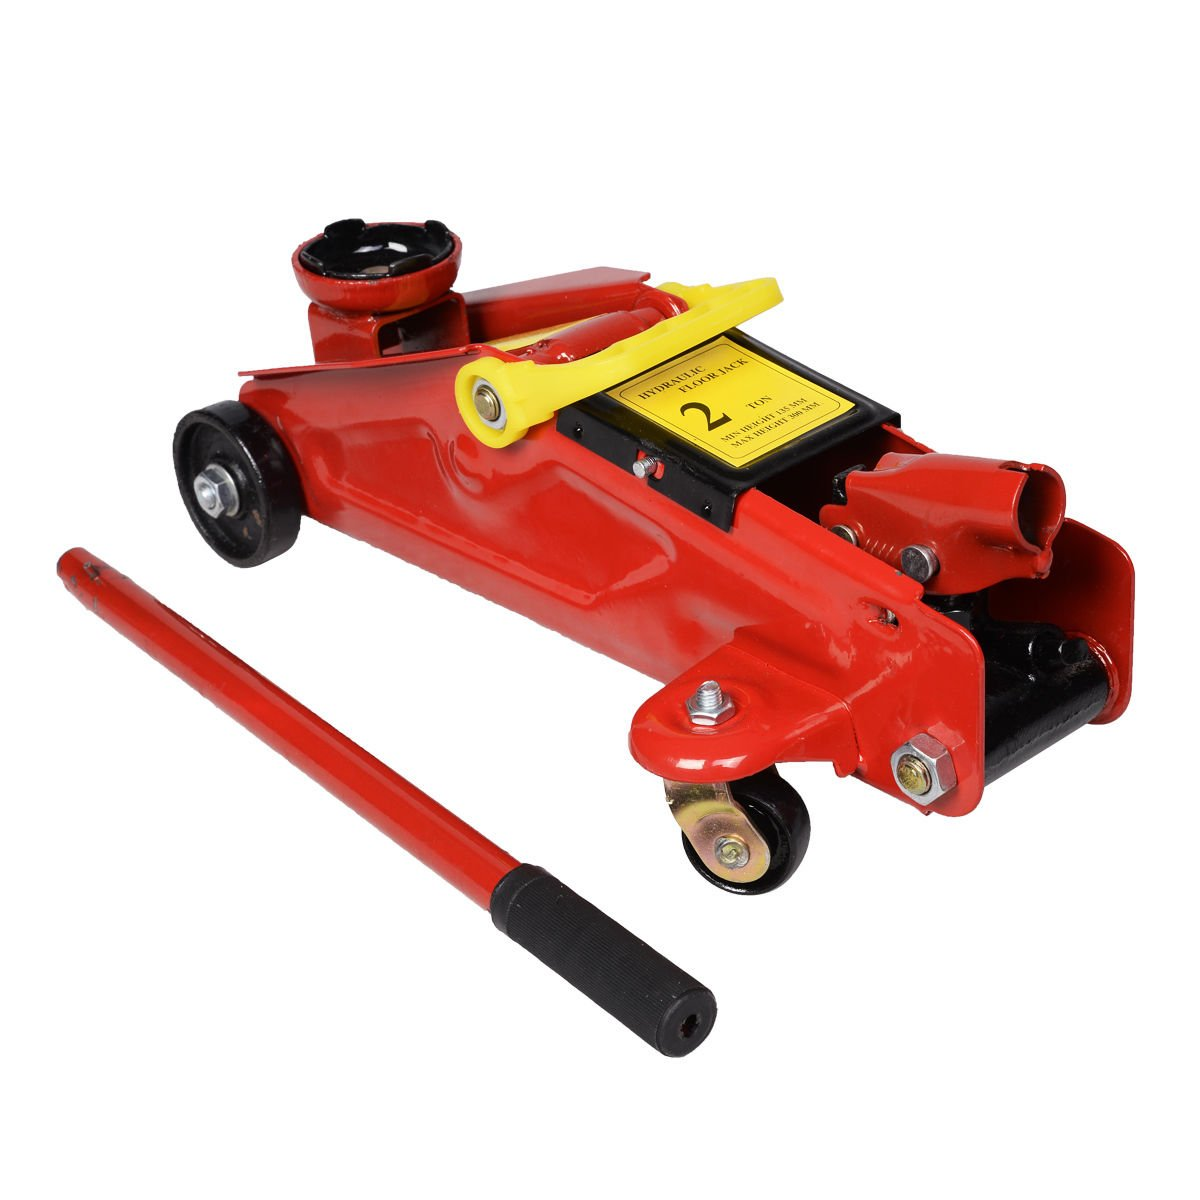 Goplus New Mini Red Hydraulic Trolley Jack 2 Ton 4000 lbs Hydraulic Floor  Jack Lift Tool On Wheels: Amazon.com: Industrial & Scientific